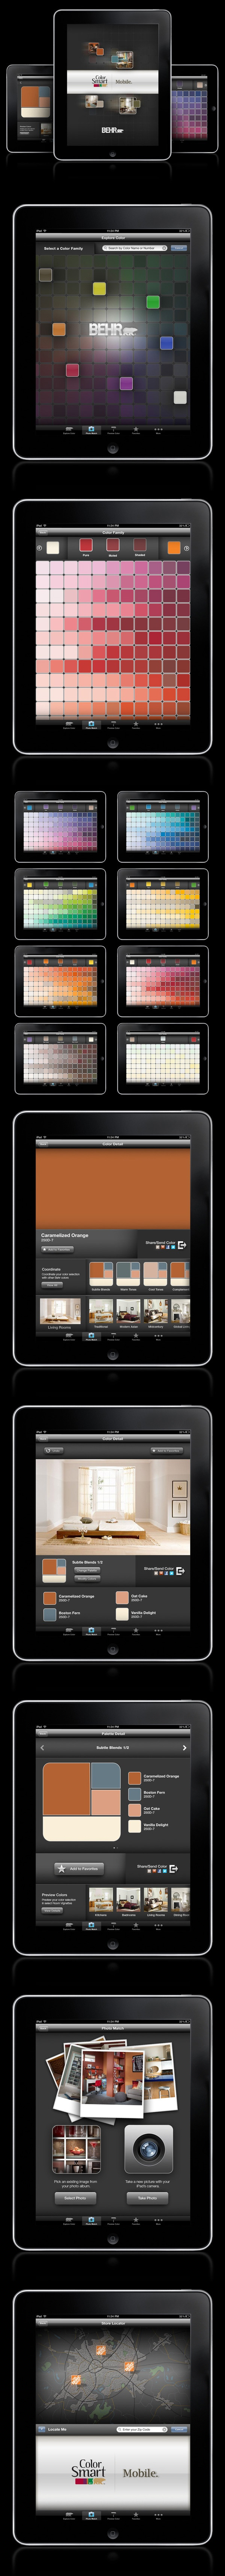 BEHR ColorSmart iPad App - Get inspired! ColorSmart by BEHR™ is now available for your iPhone® and iPad®. Designed with all of the same great features found in our online version, ColorSmart by BEHR™ Mobile is an easy and convenient way to find, coordinate or preview a BEHR® paint color for all of your paint projects. #mobile #app #tablet #digital